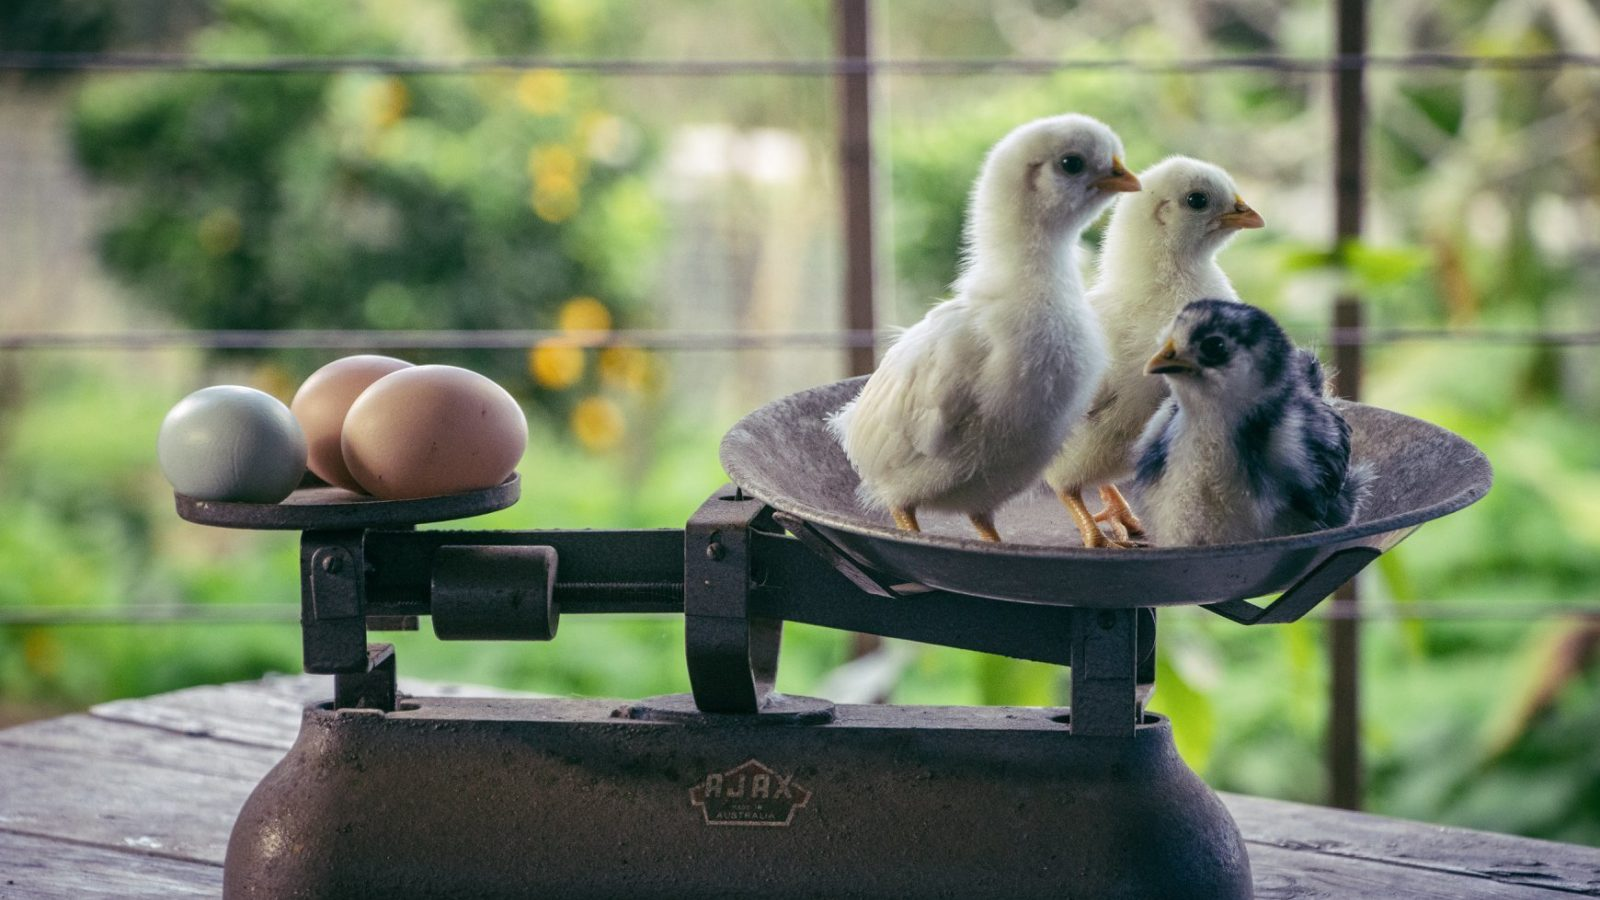 Limestone Permaculture chicks on scales